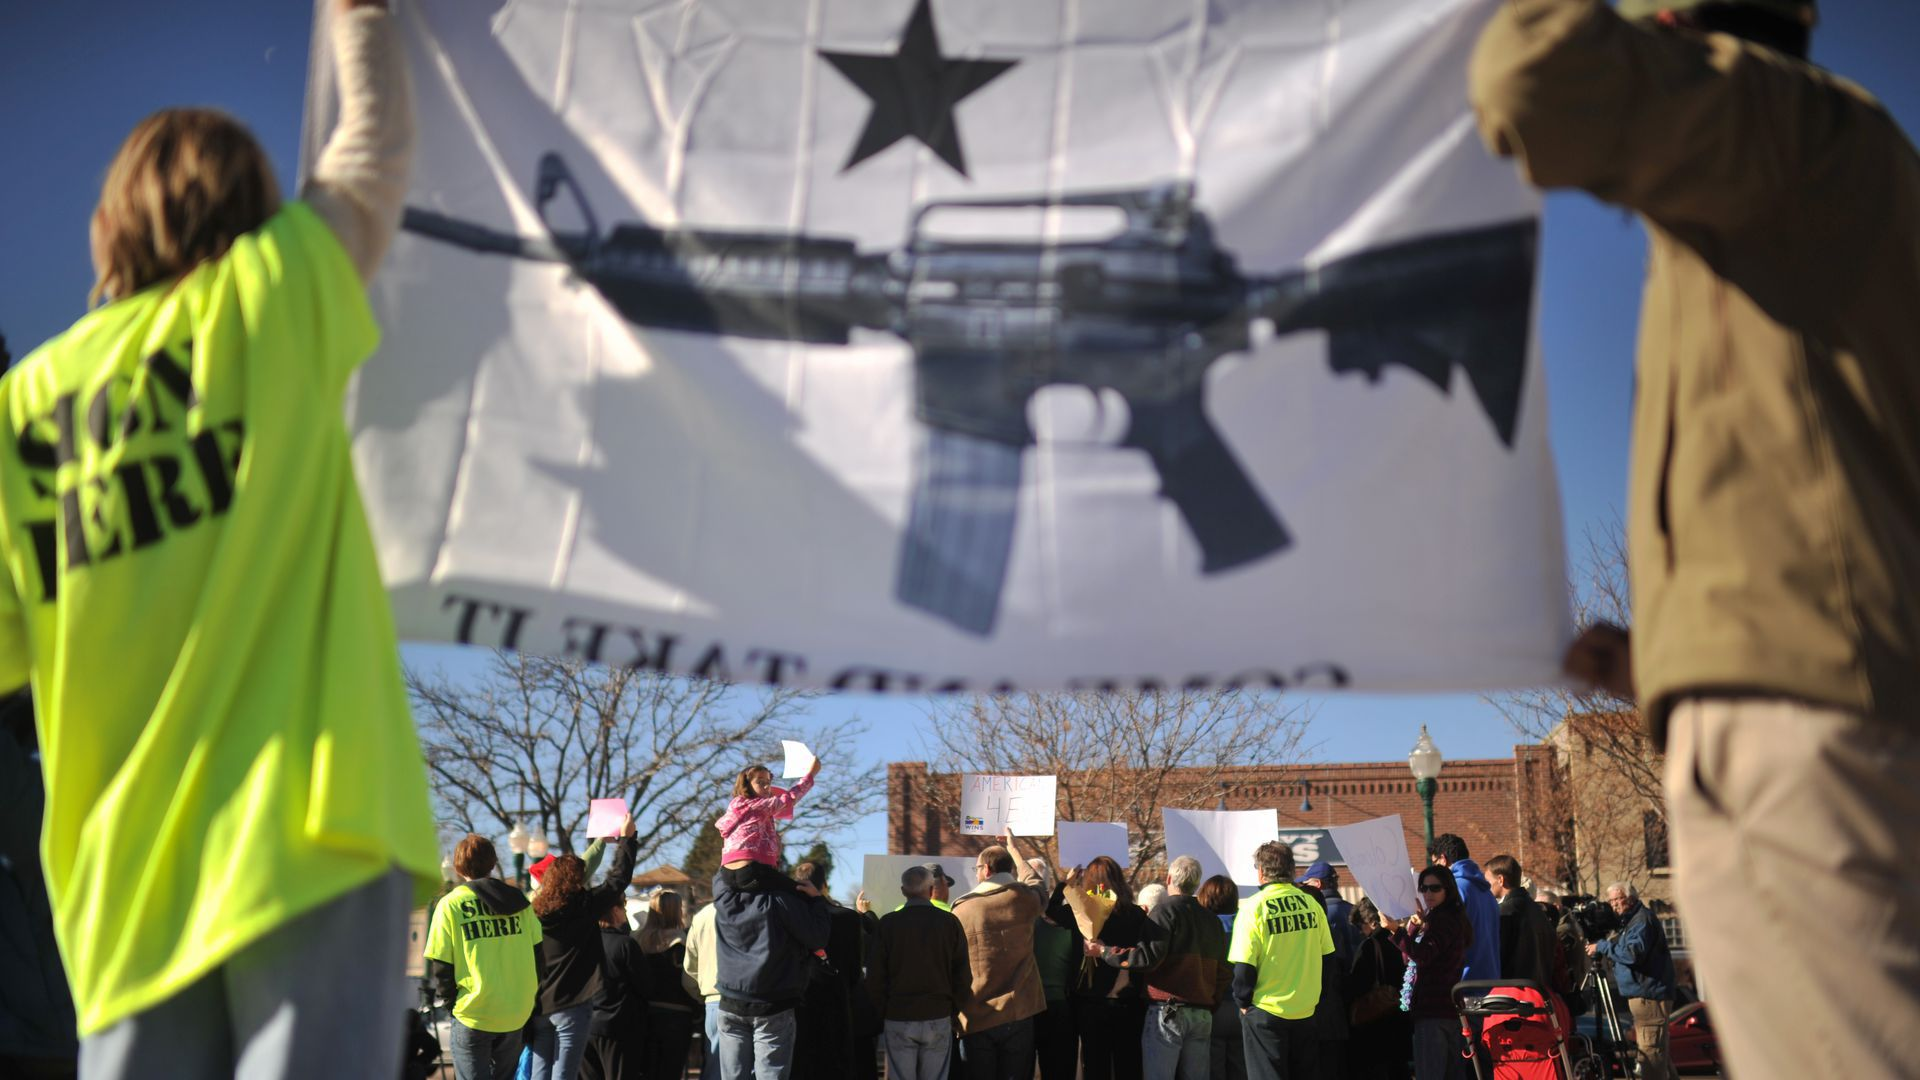 Pro-gun rights protesters hold up a flag with a gun on it